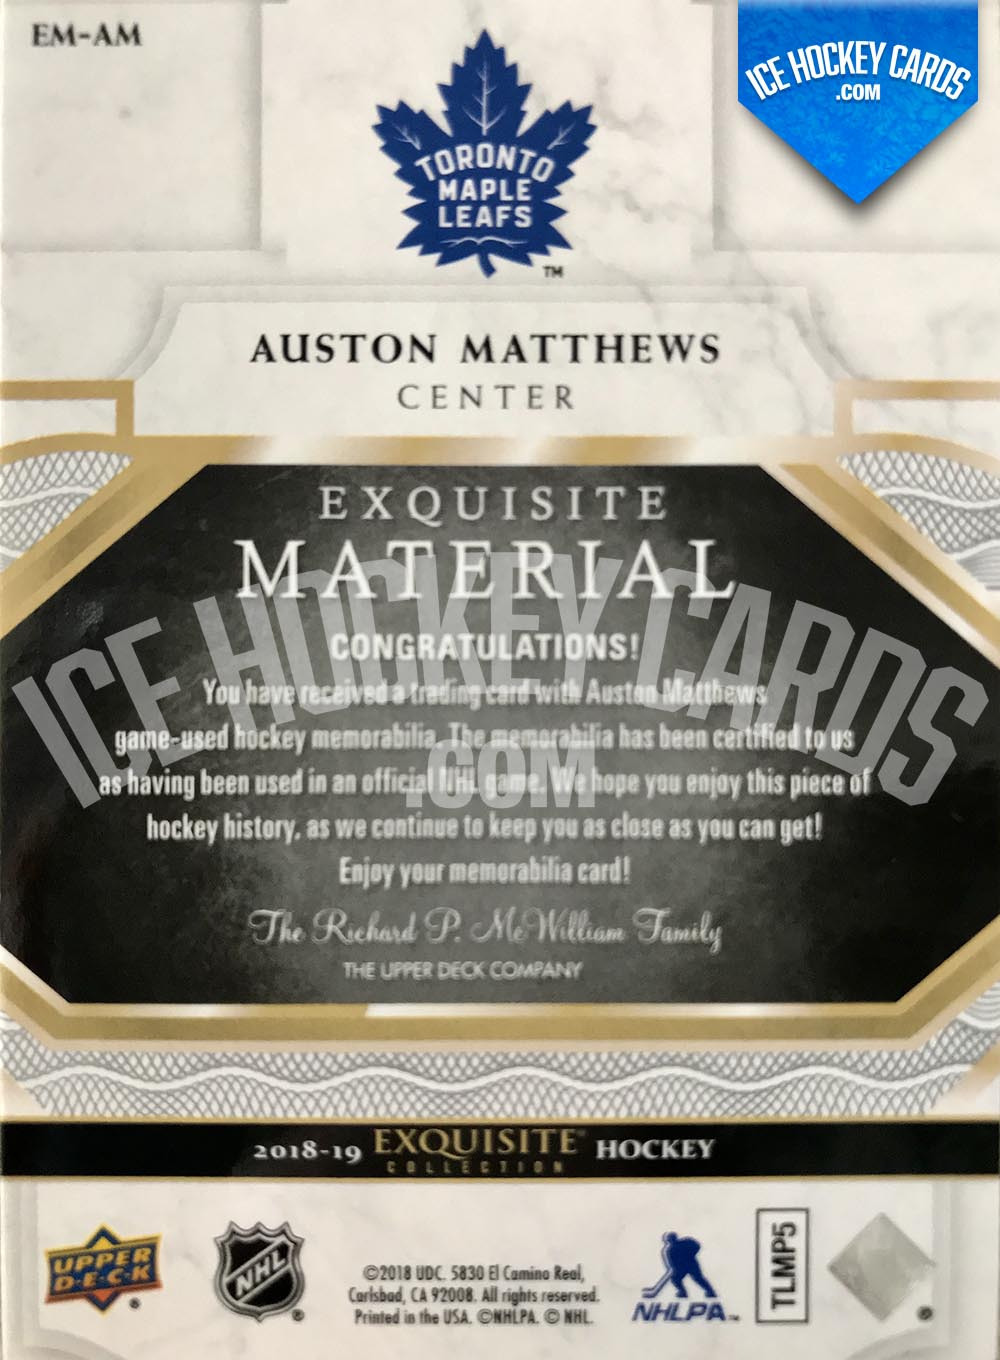 Upper Deck - Exquisite Collection 2018-19 - Auston Matthews Premium Material Patch Card # to 34 RARE back